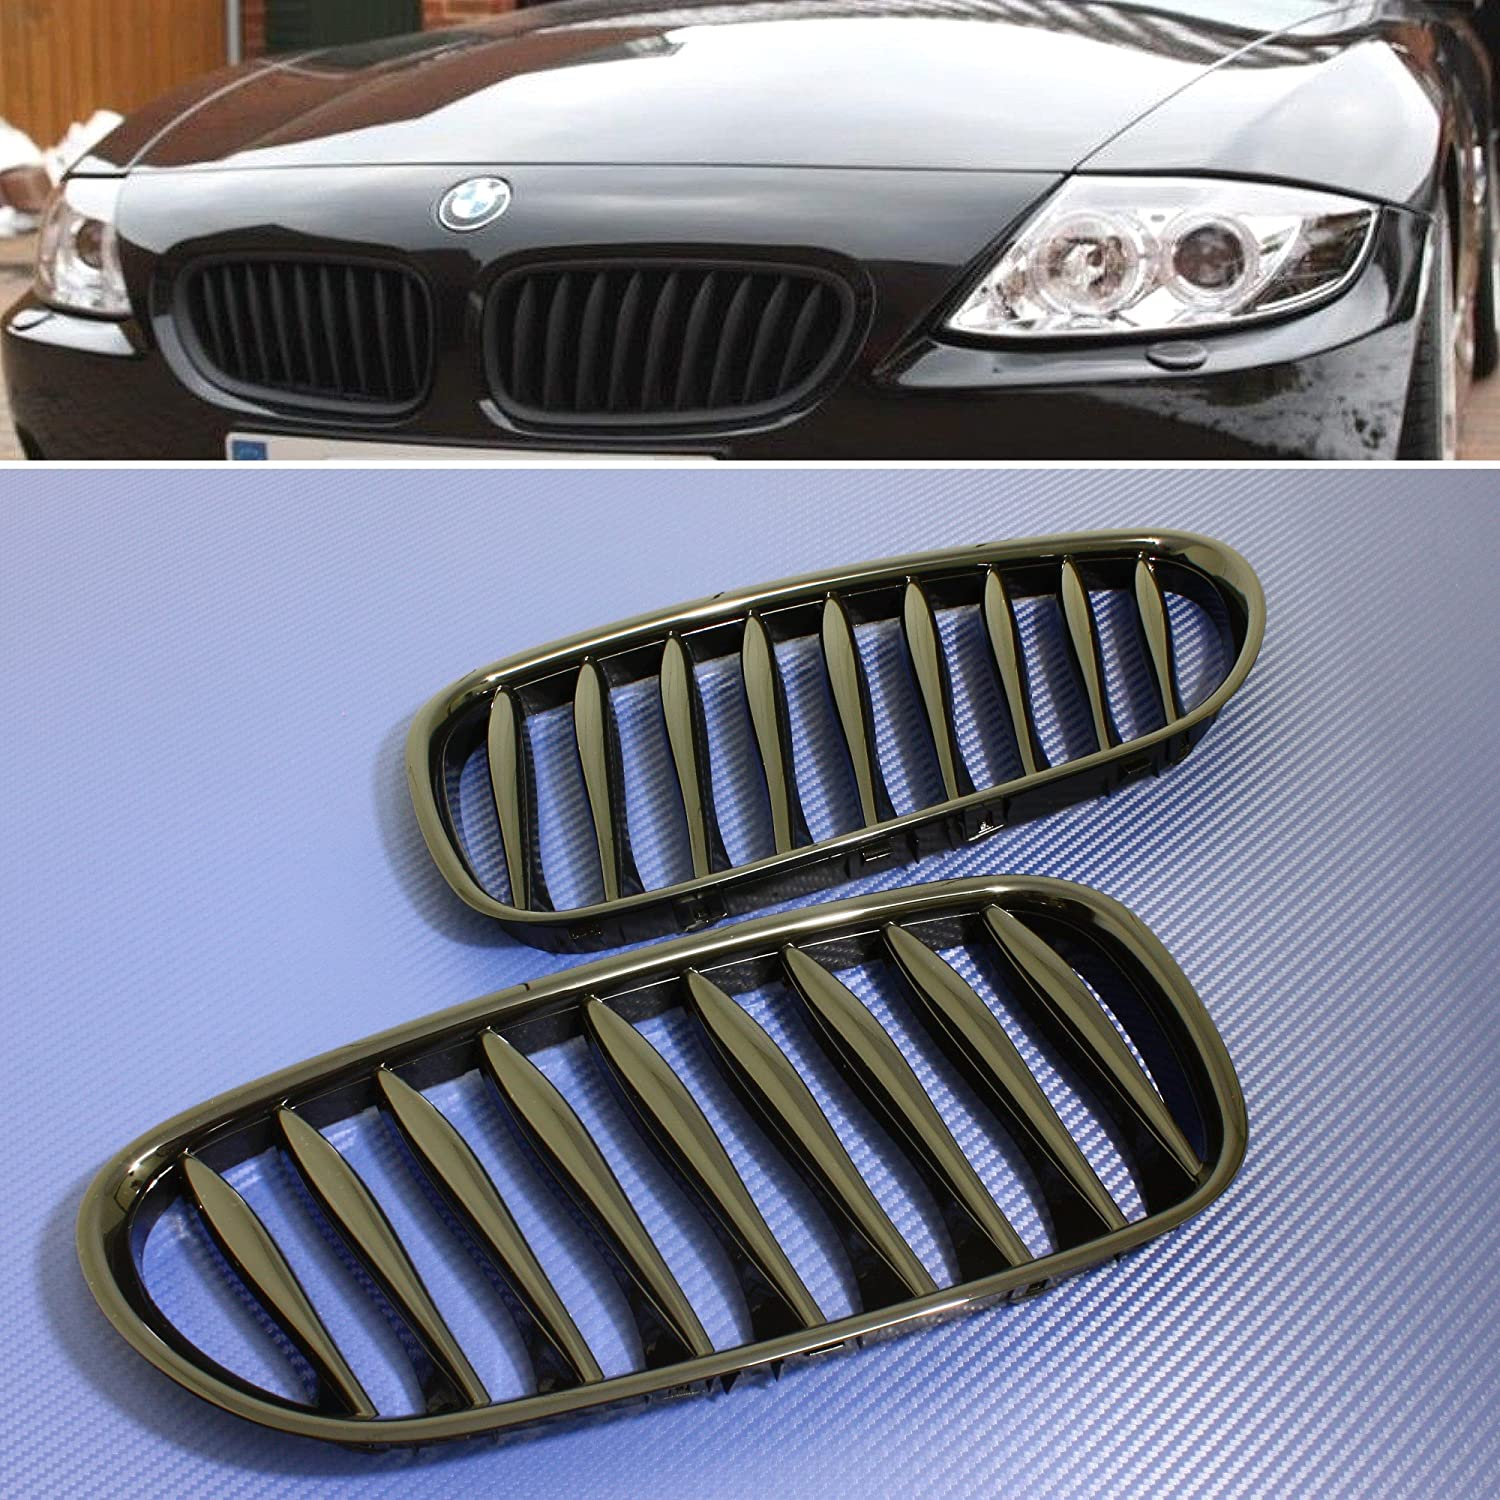 Z10 2003-08 E85 Roadster E86 Coupe Z4 cabriolet Front Grille Grill Gloss Black